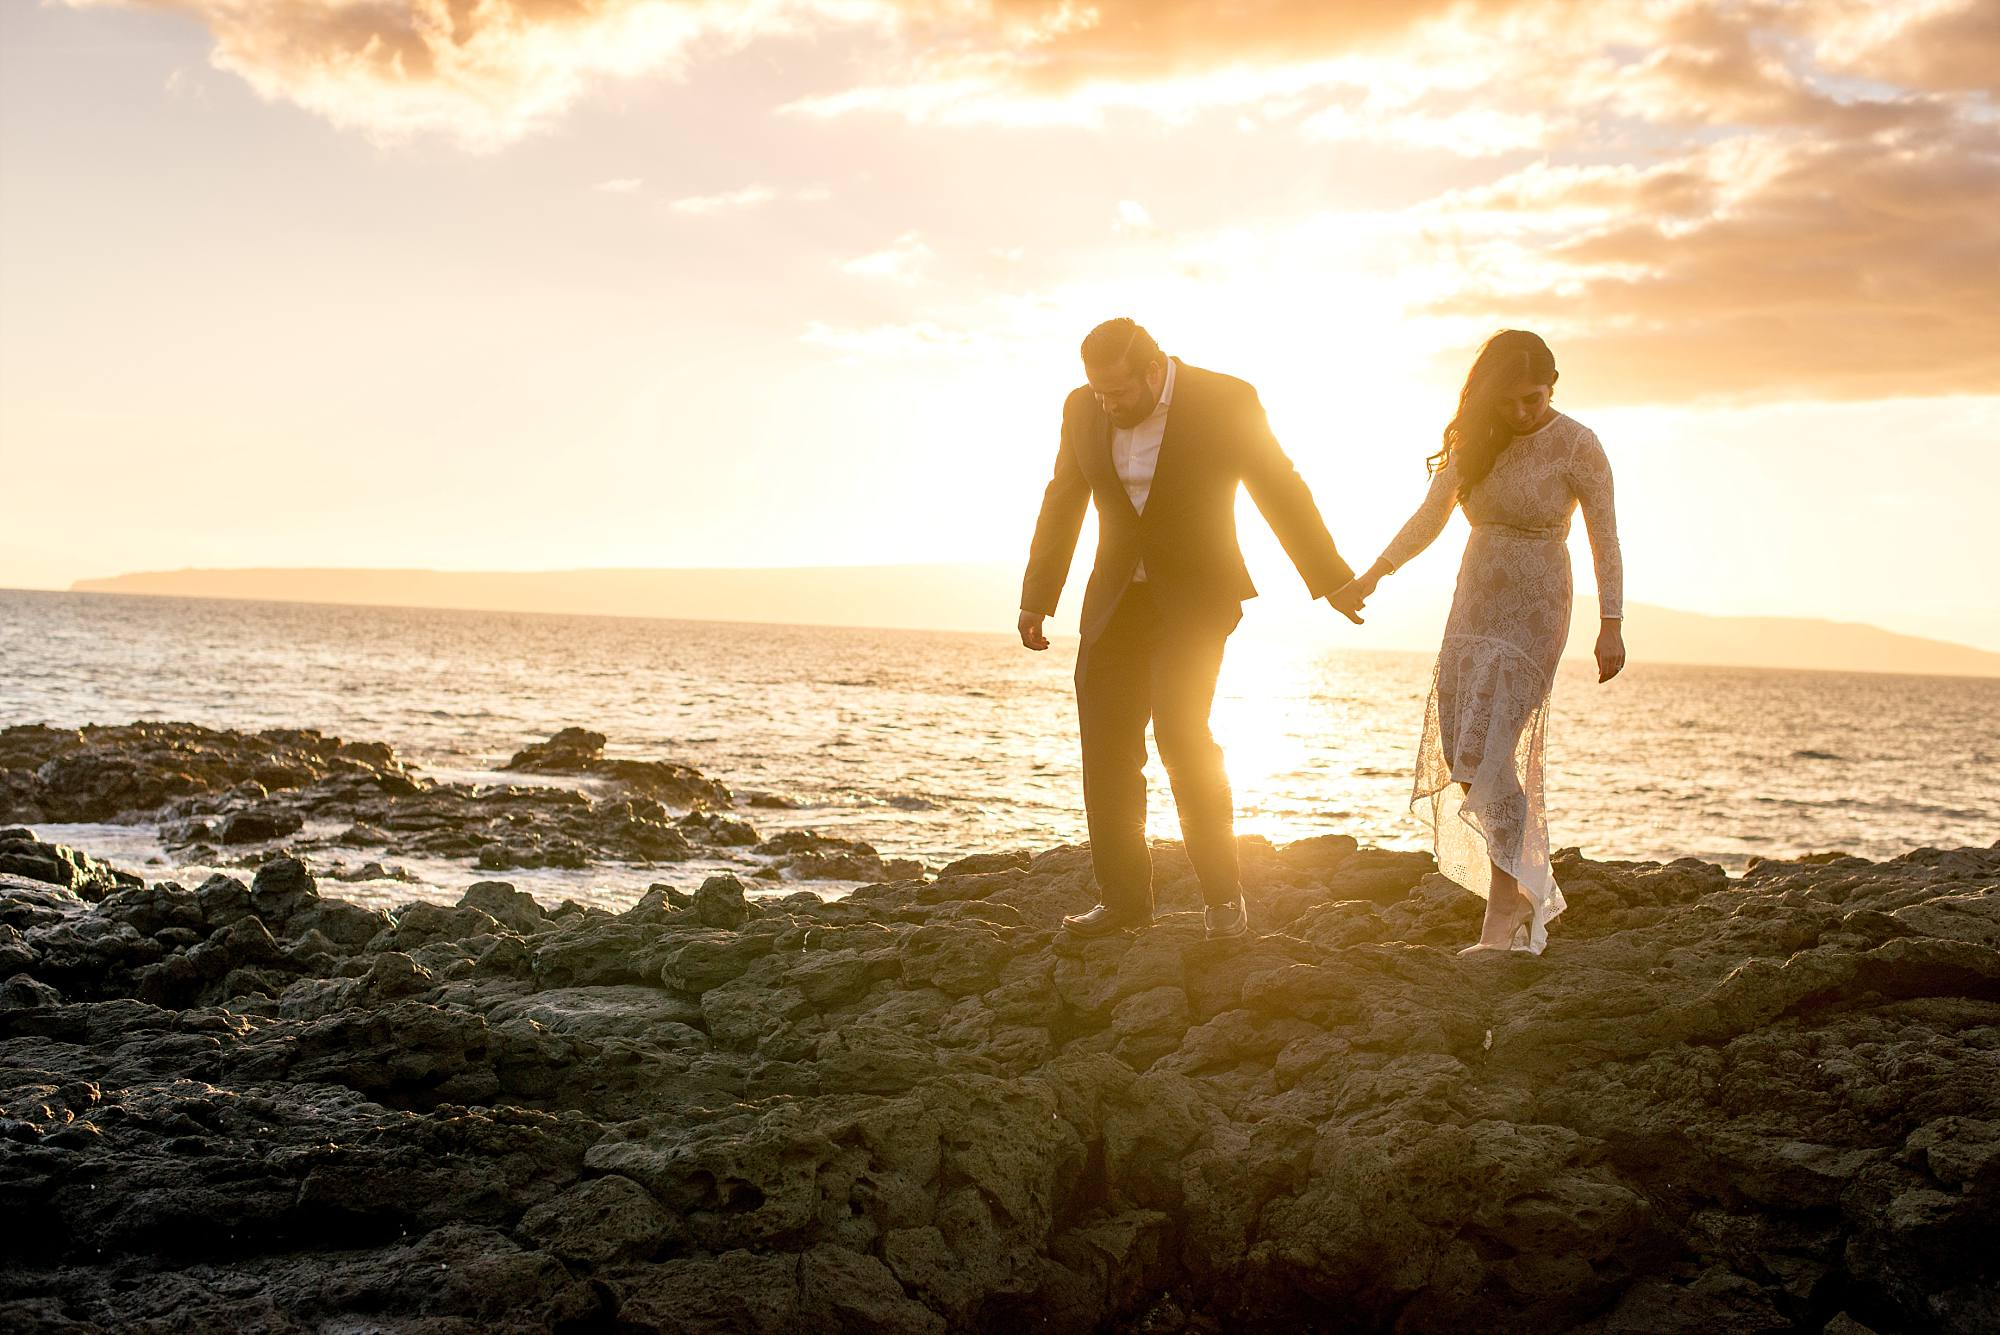 man and woman traversing lava rocks in their wedding attire